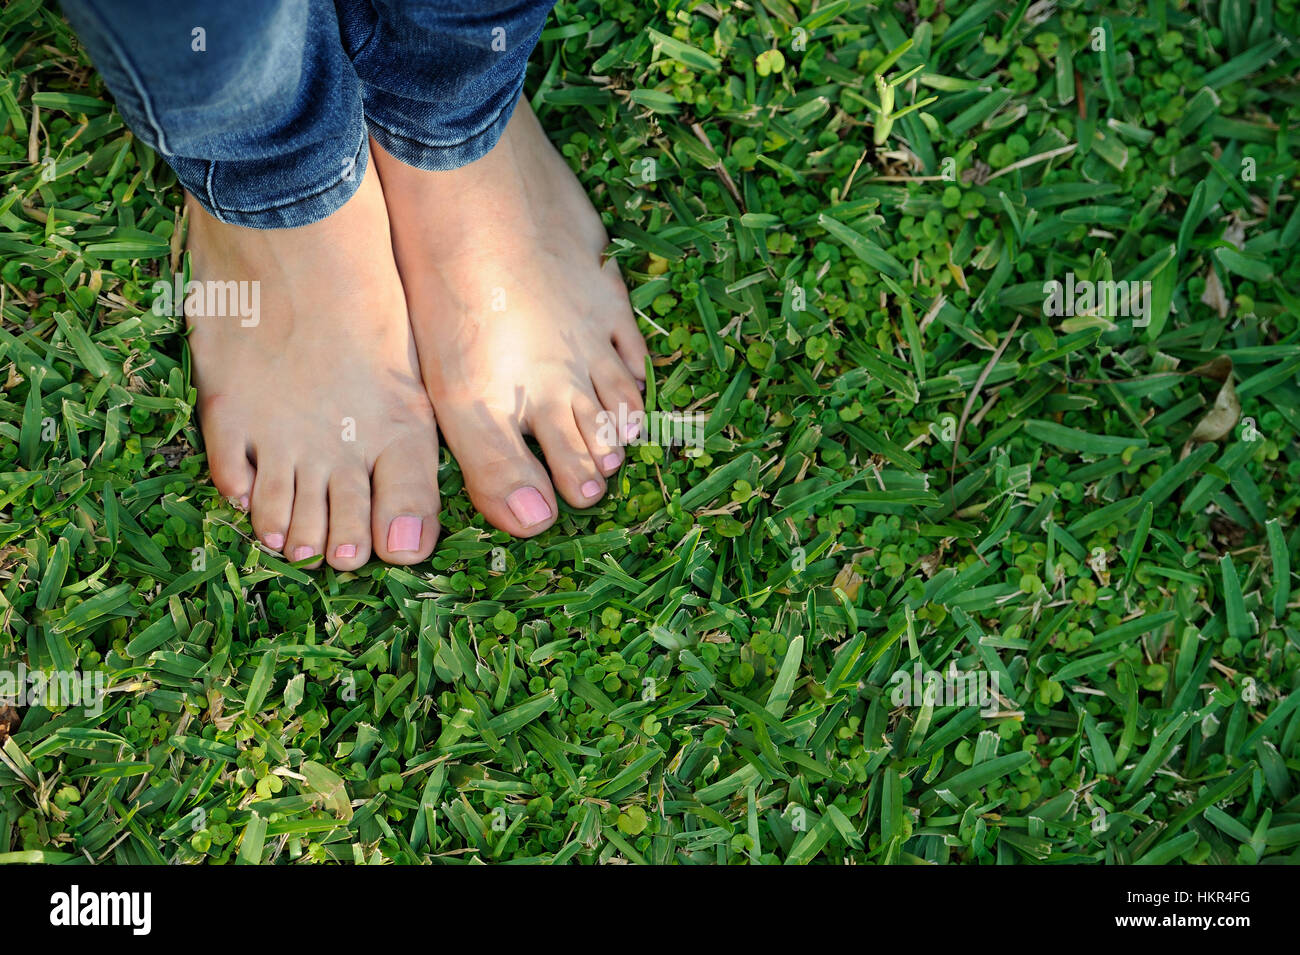 bare foot on jeans stand on green grass - Stock Image